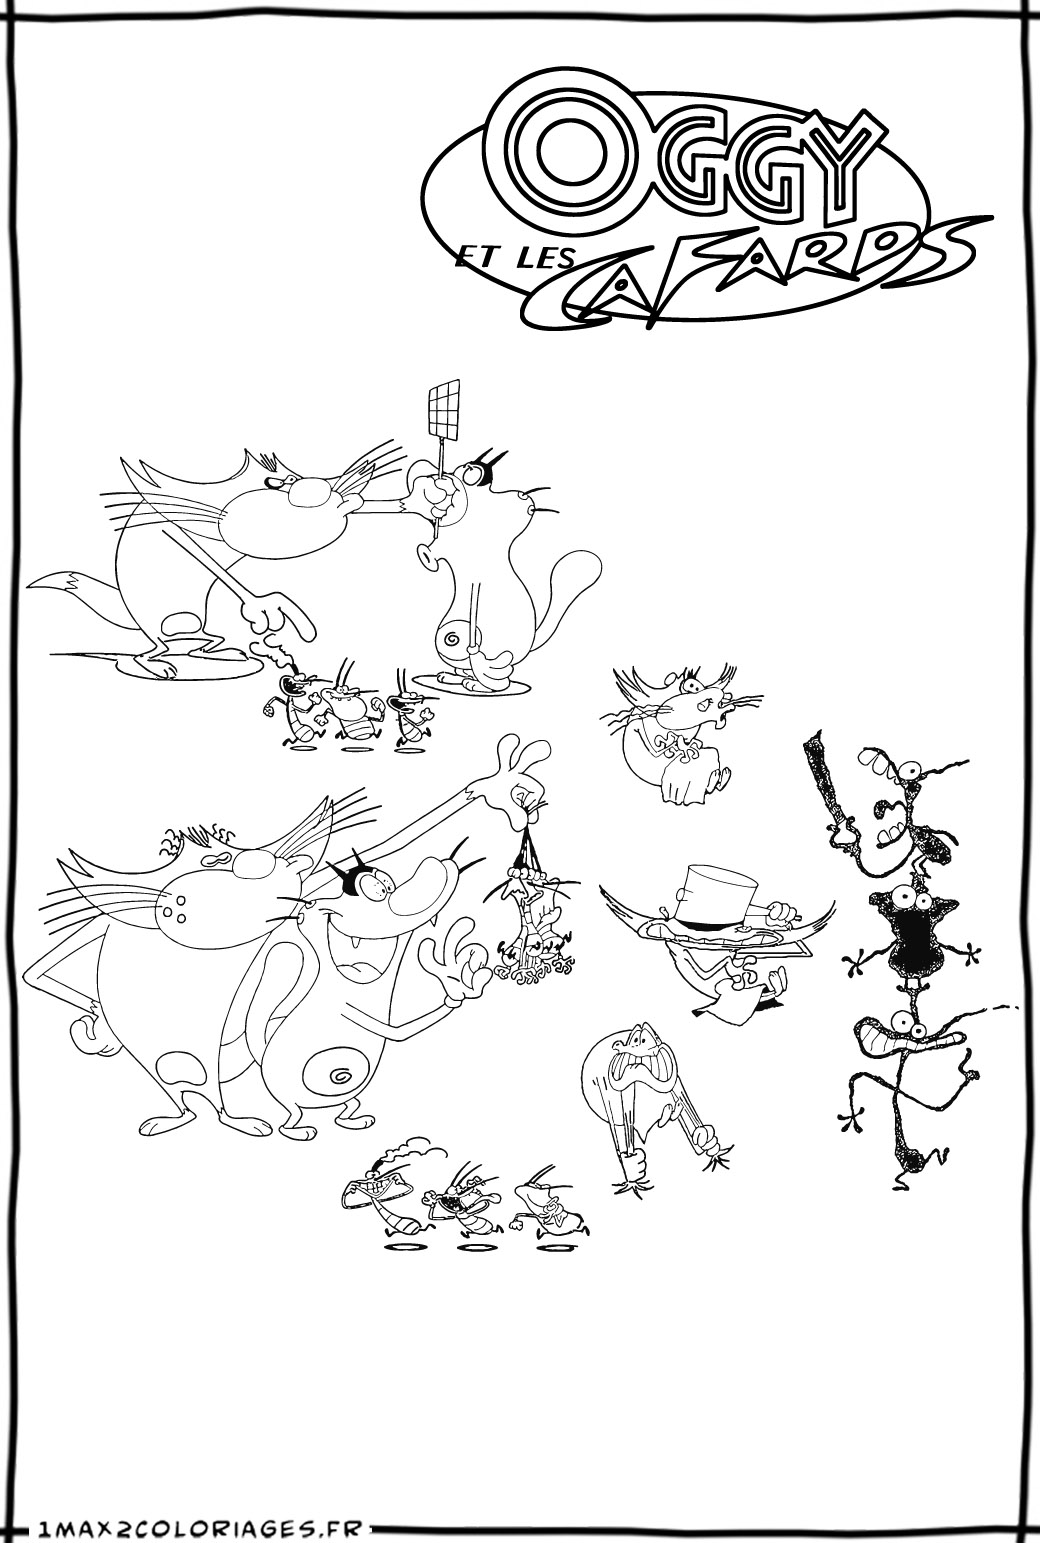 oggy and olivia coloring pages - photo #31